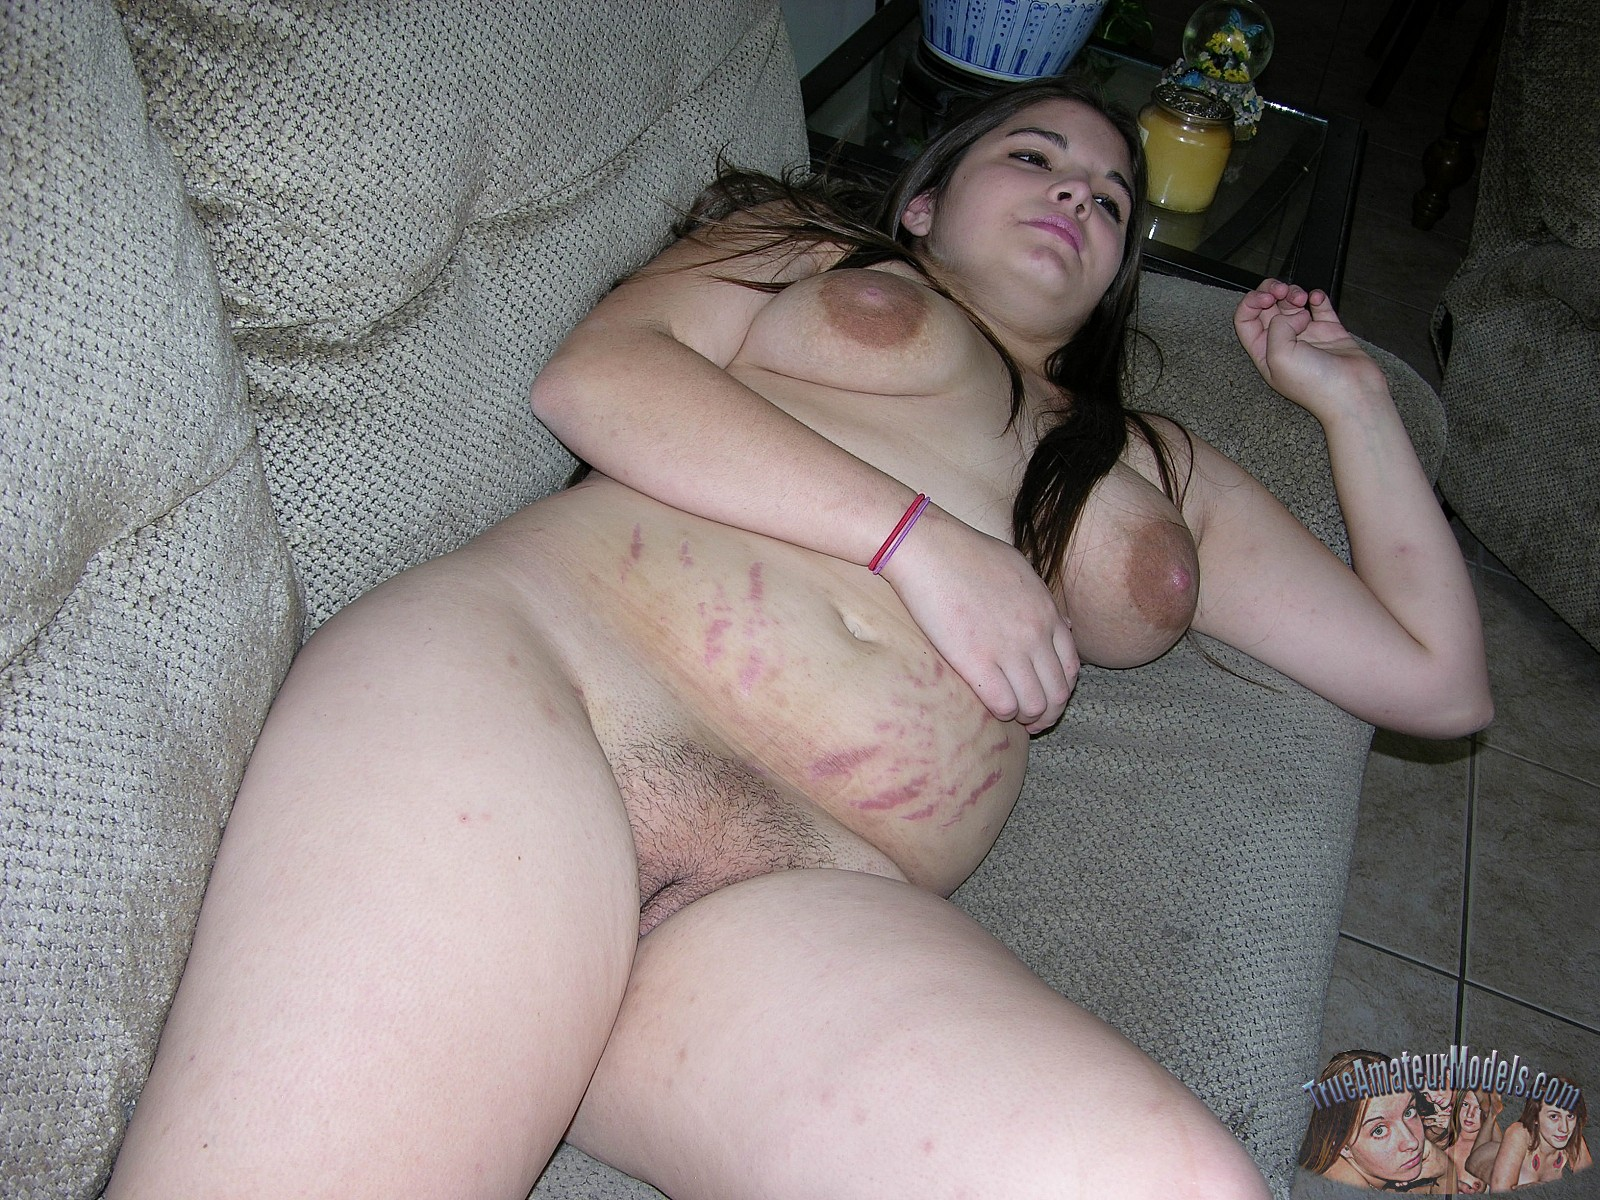 Fat girls tit nude big